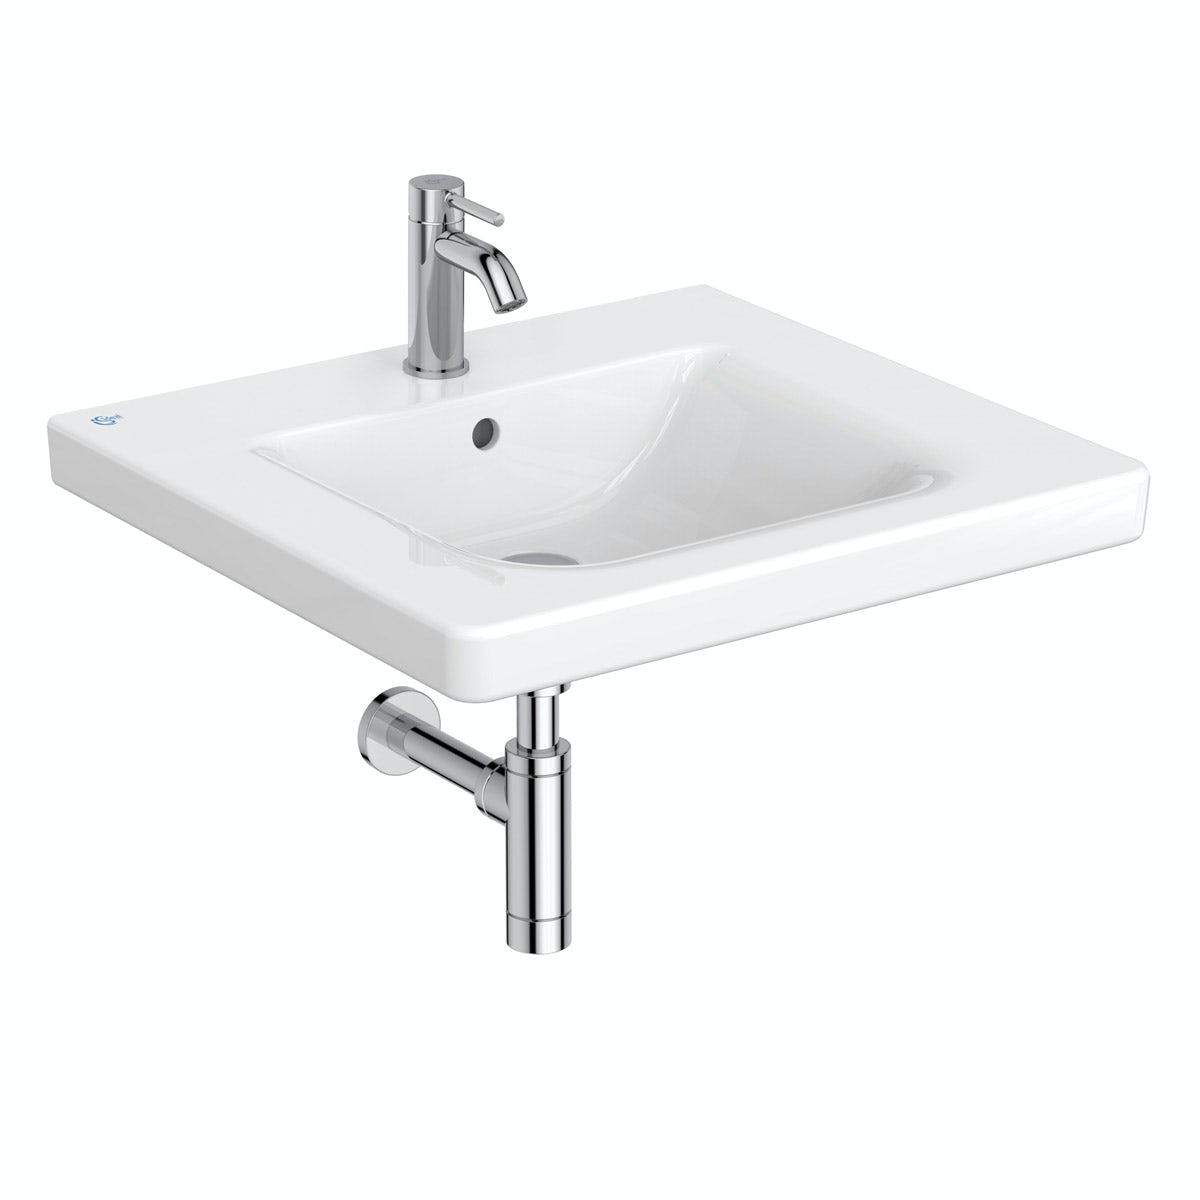 Ideal Standard Concept Freedom 1 tap hole accessible basin 600mm